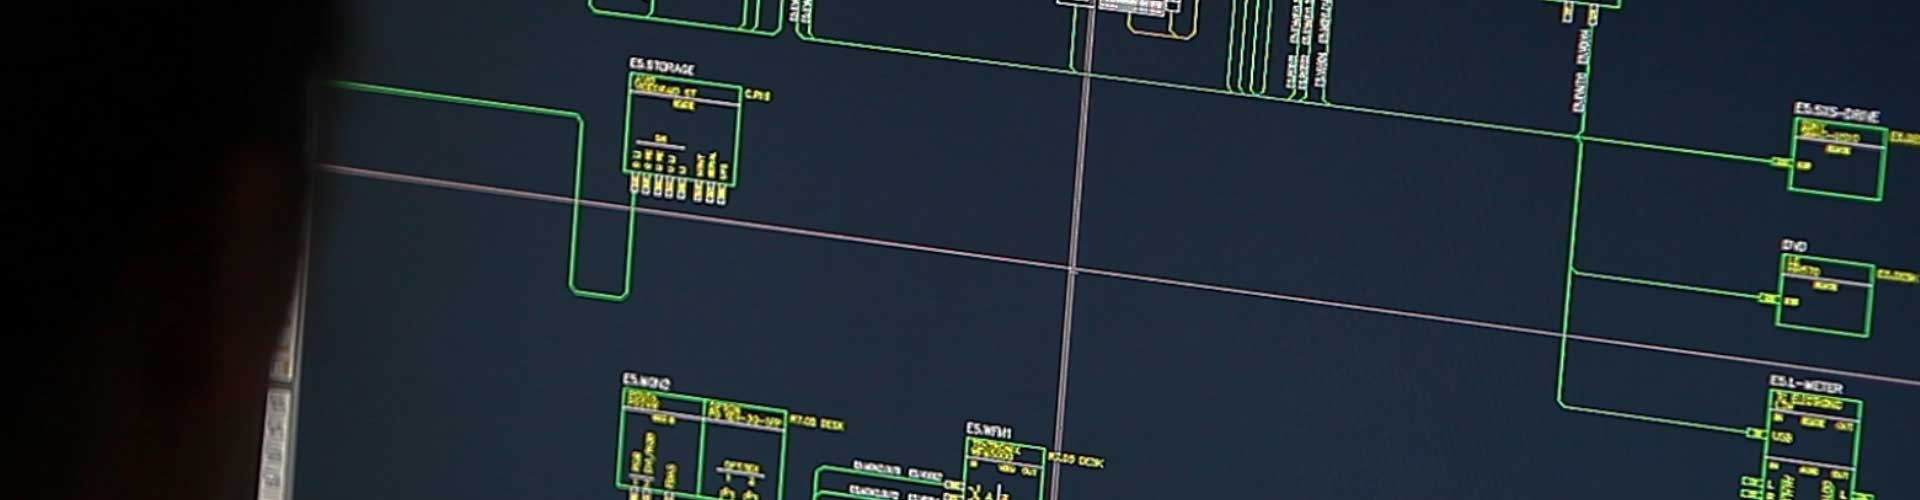 Autocad Electrical Training At Autodesk Approved Centre Circuit Design Common Cad Drawingsautocad Blockscrazy